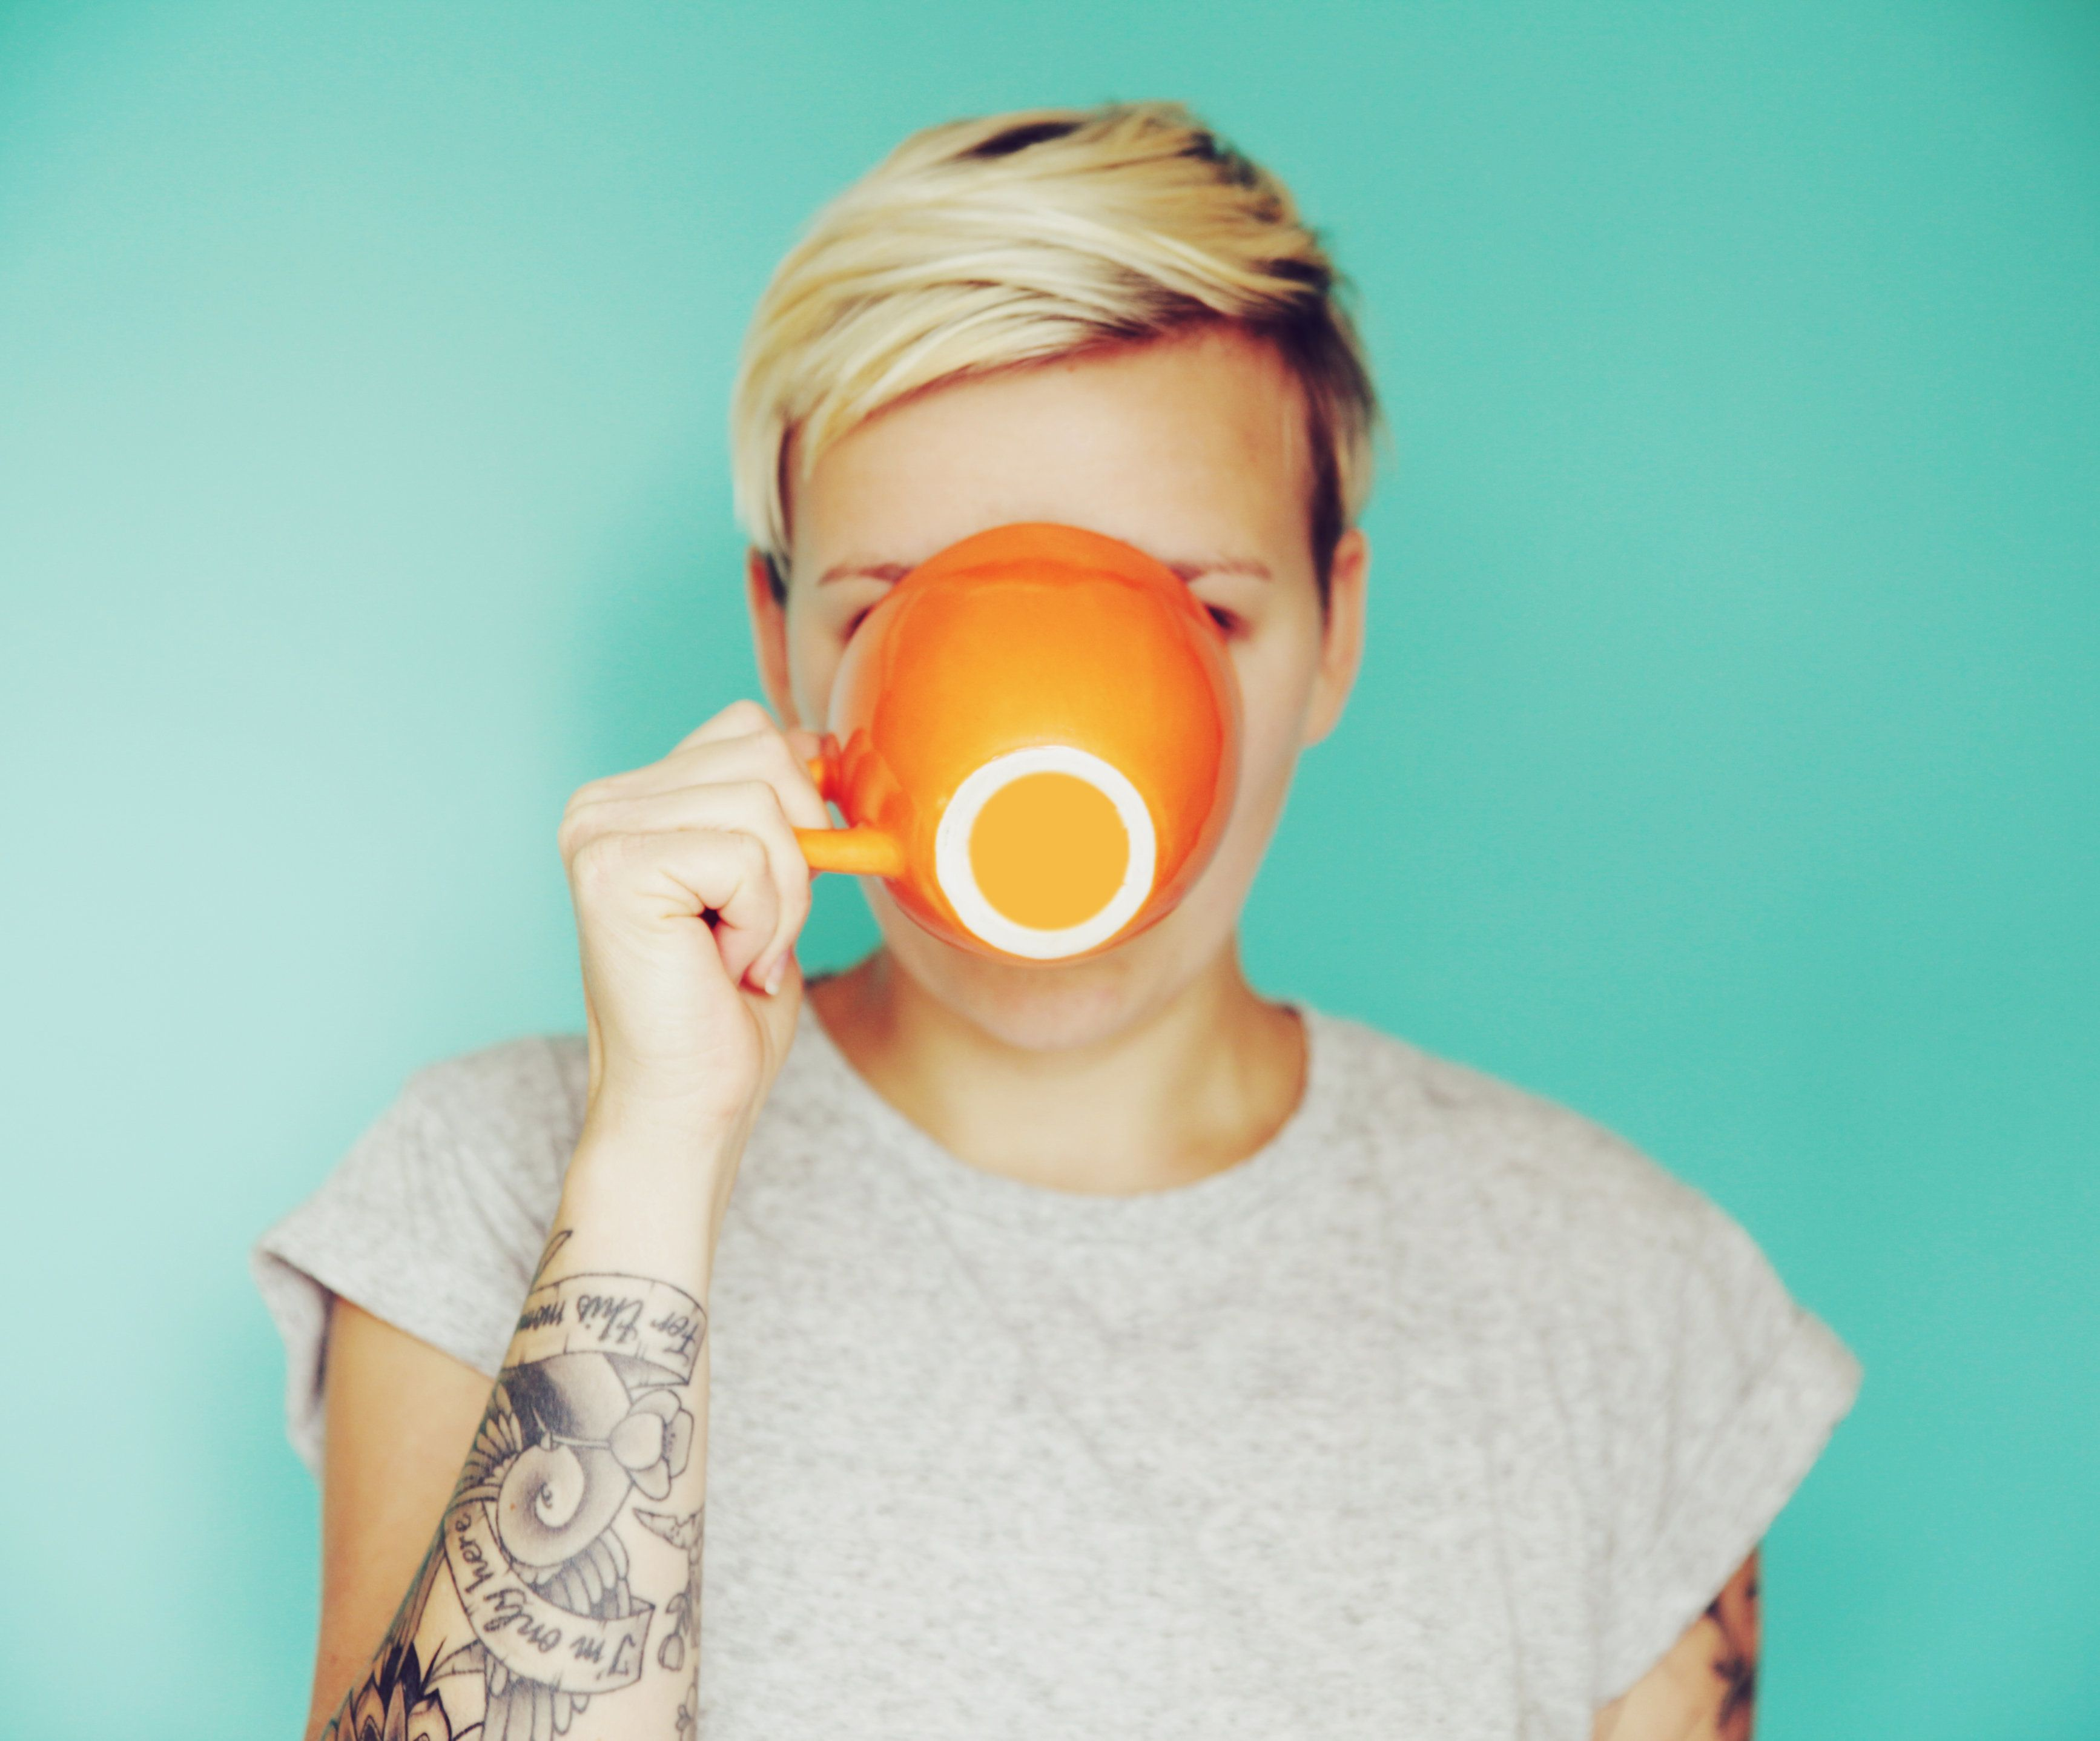 Young woman drinking out of an orange cup on a blue backdrop